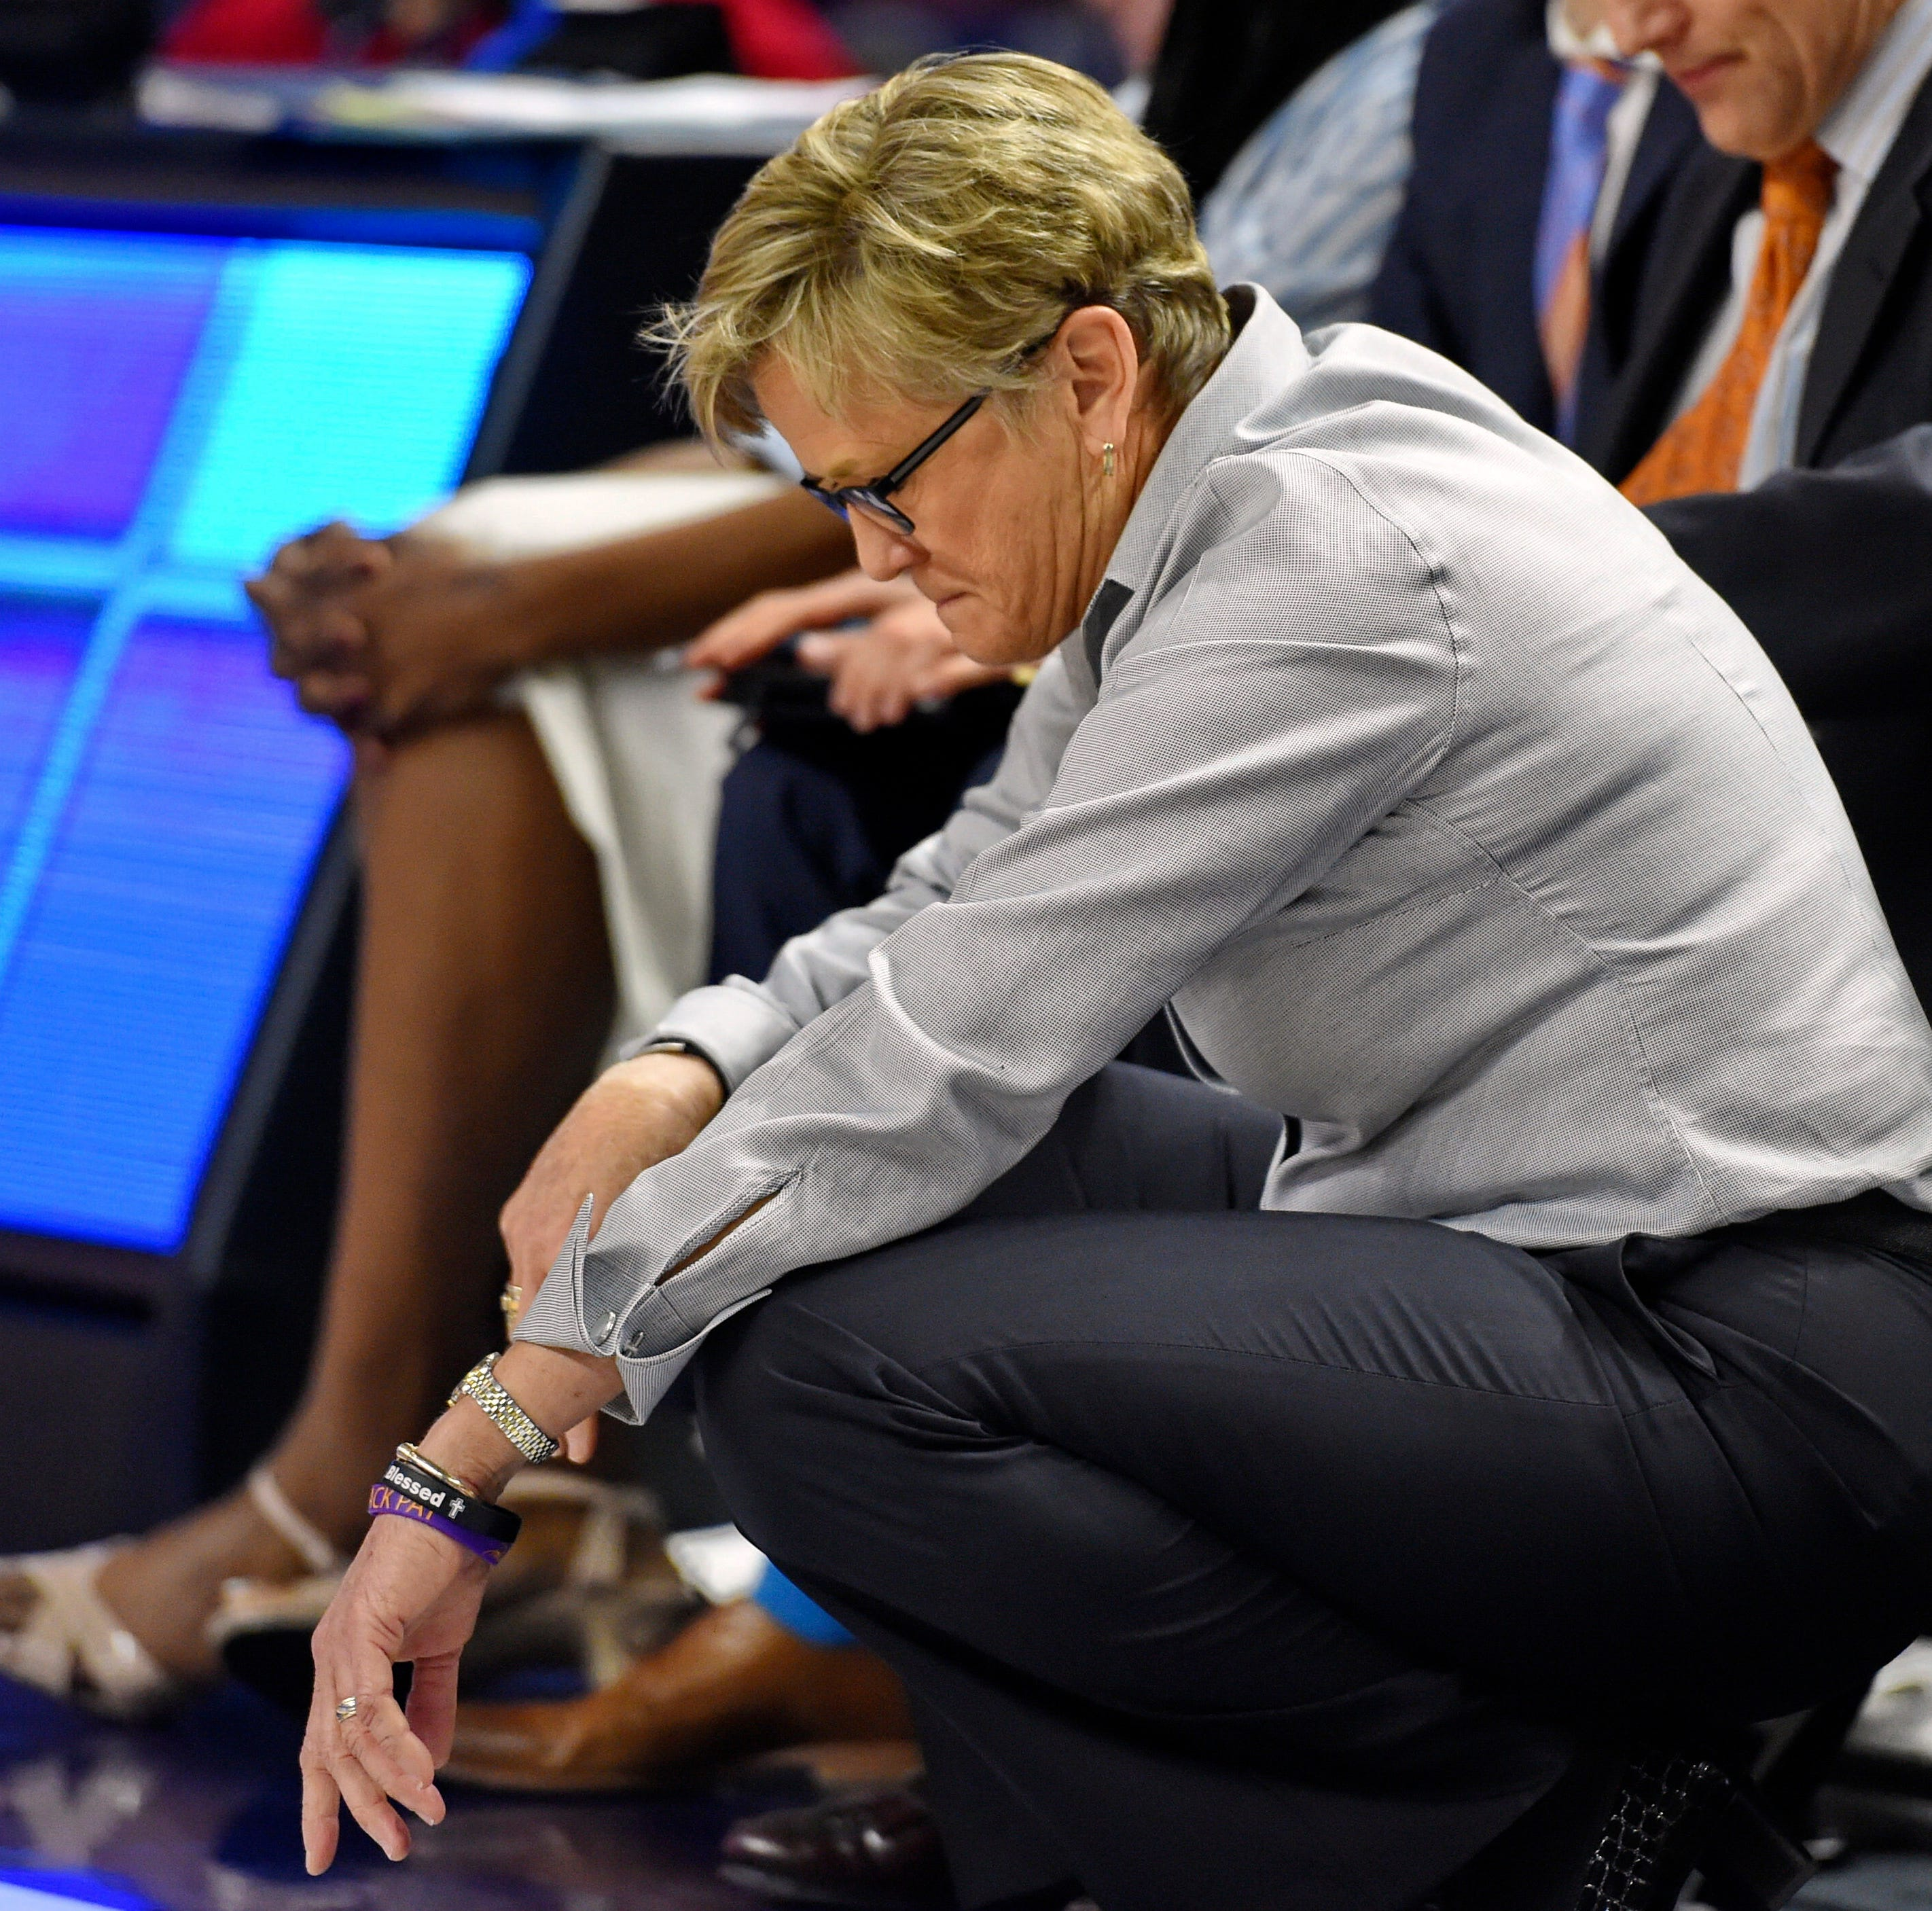 John Adams: Has Lady Vols basketball coach Holly Warlick done enough to keep her job?